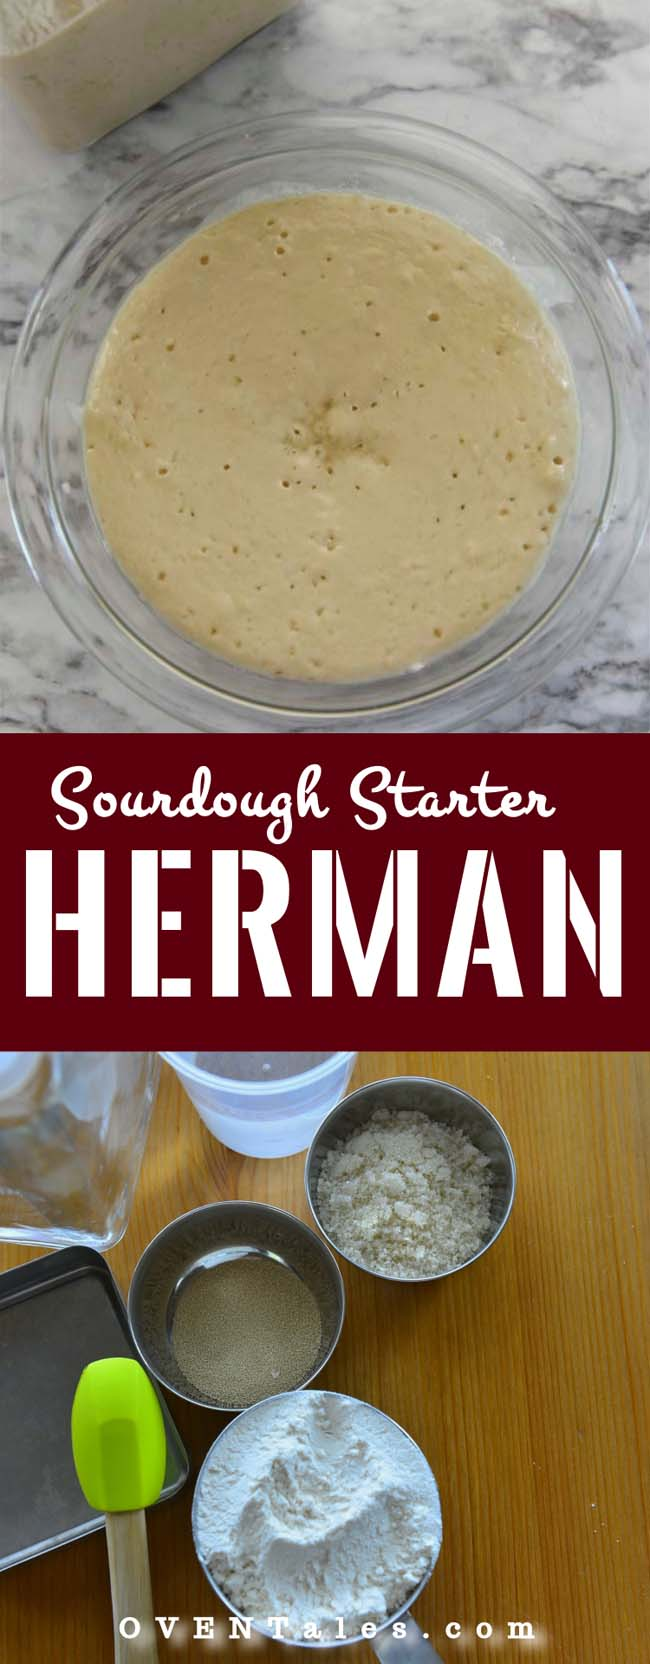 Herman starter is used to make cakes and breads